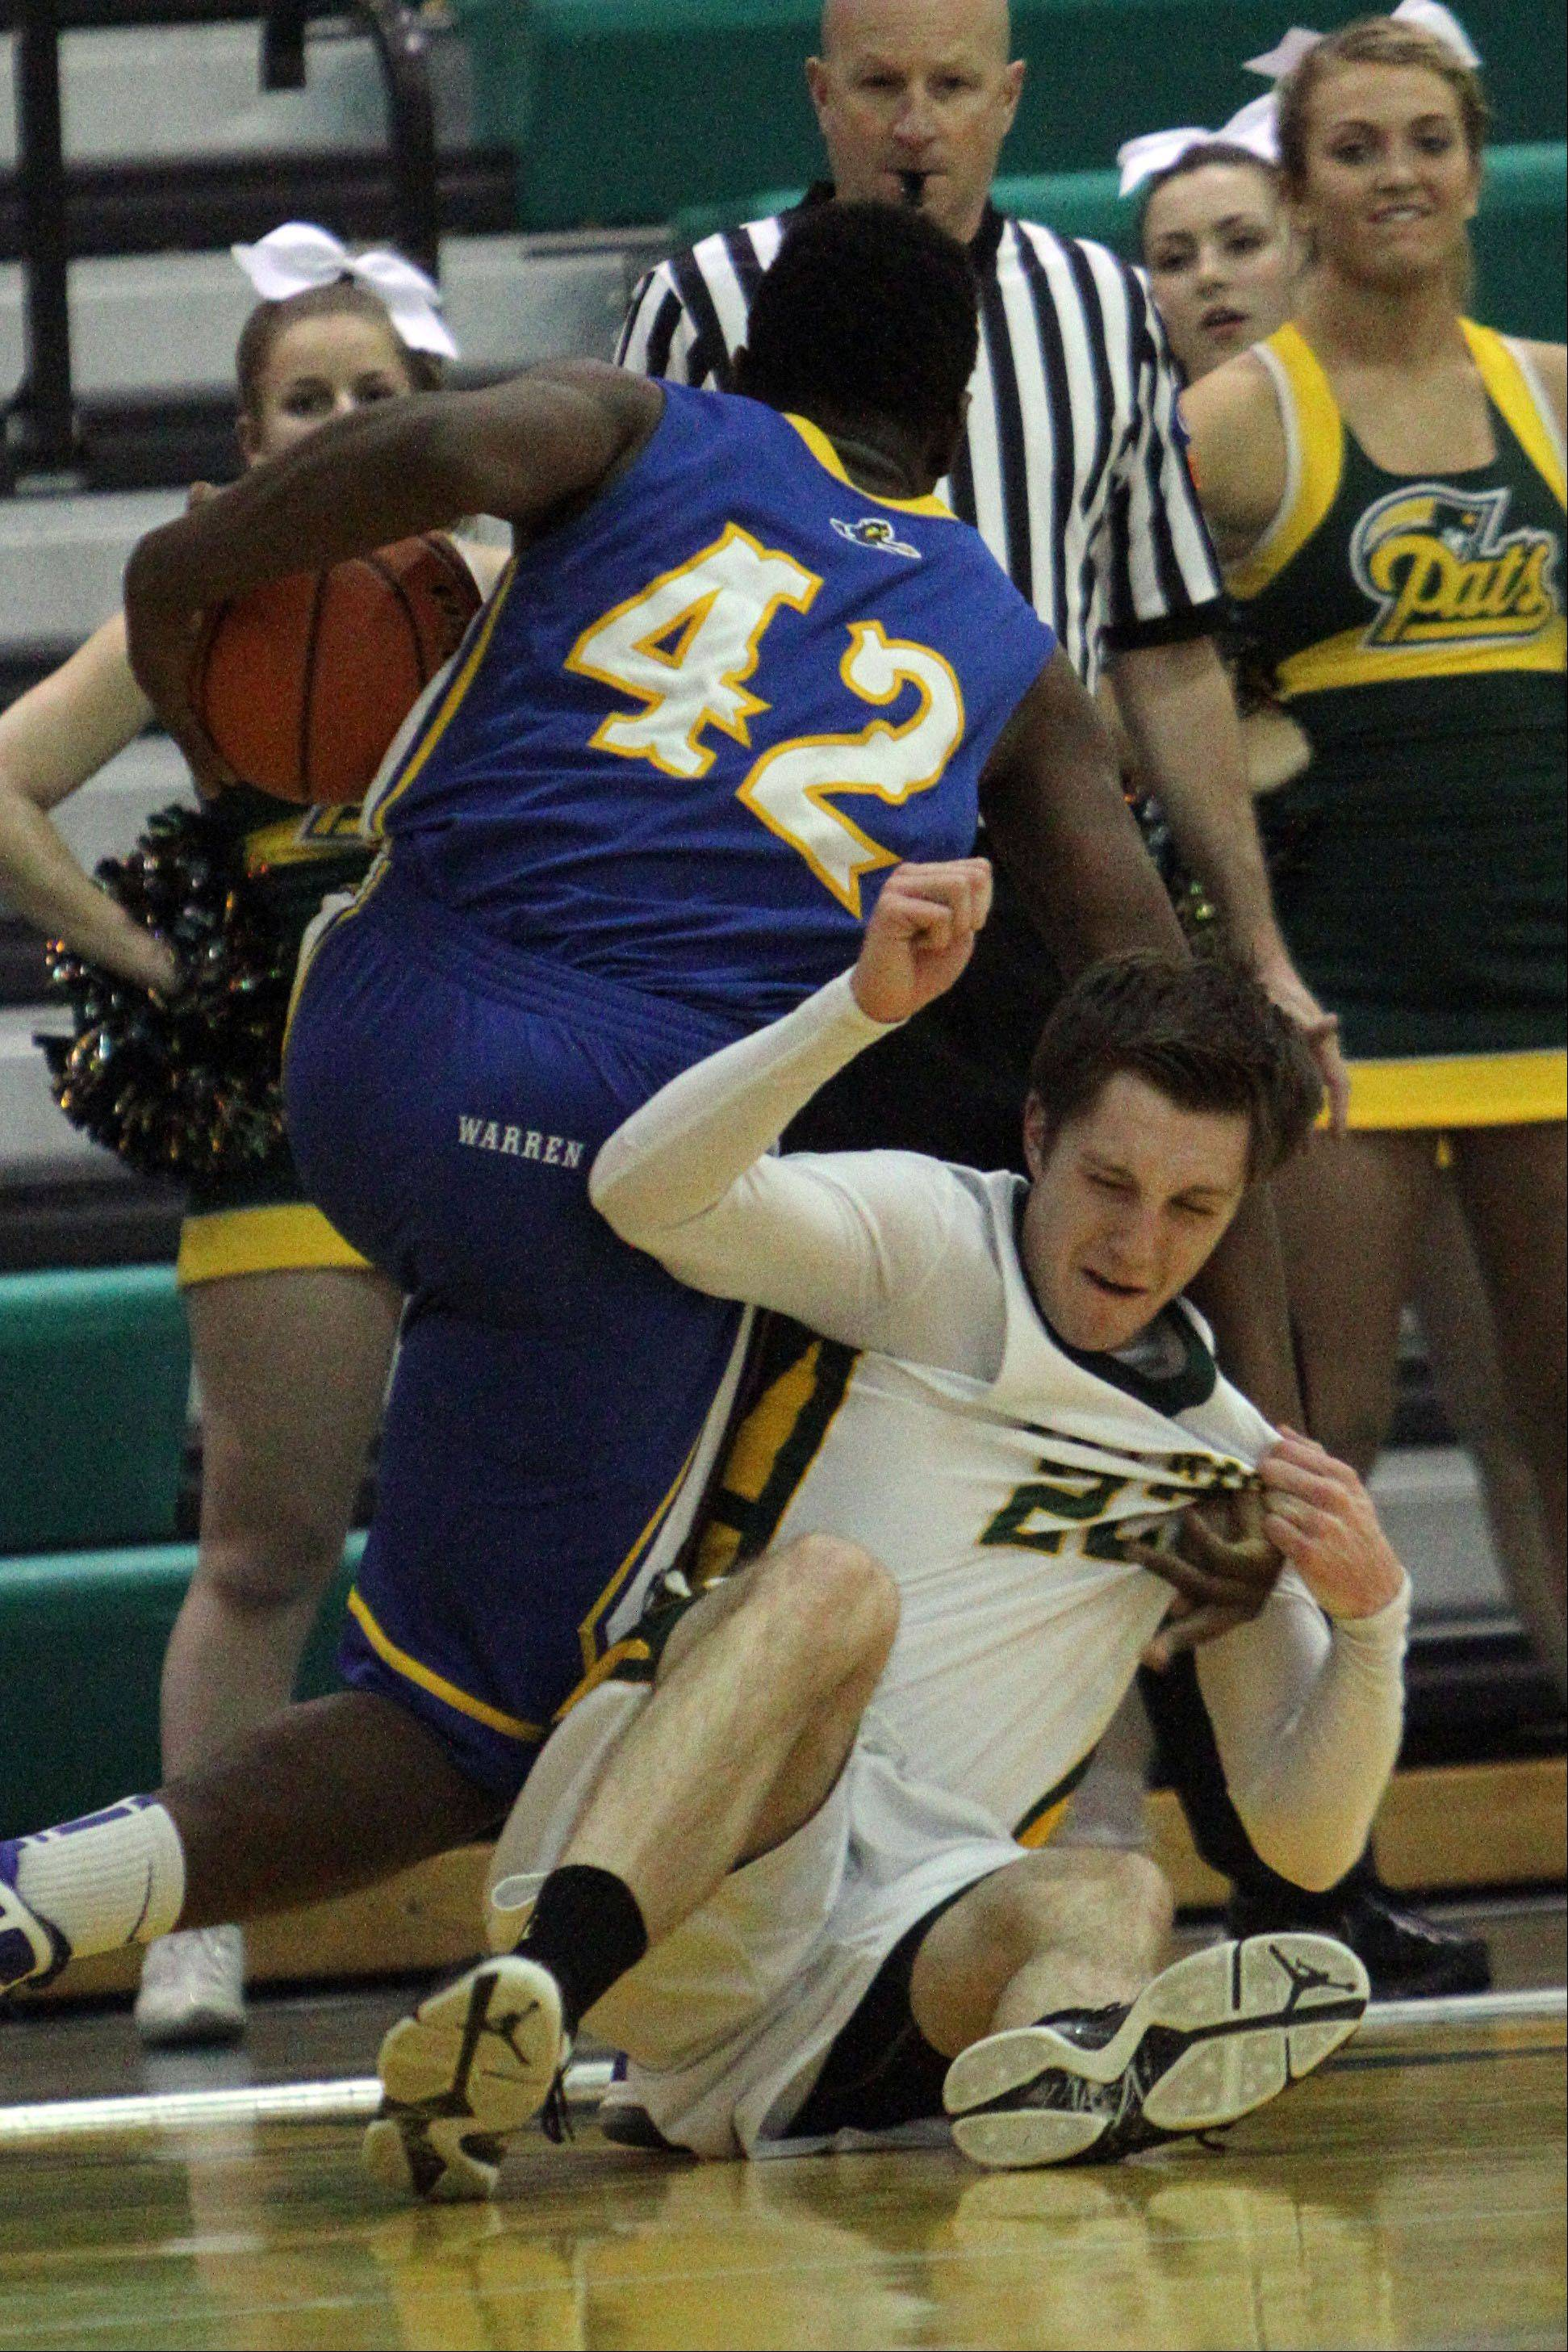 Images from the Warren at Stevenson boys basketball game Tuesday, Jan. 22.